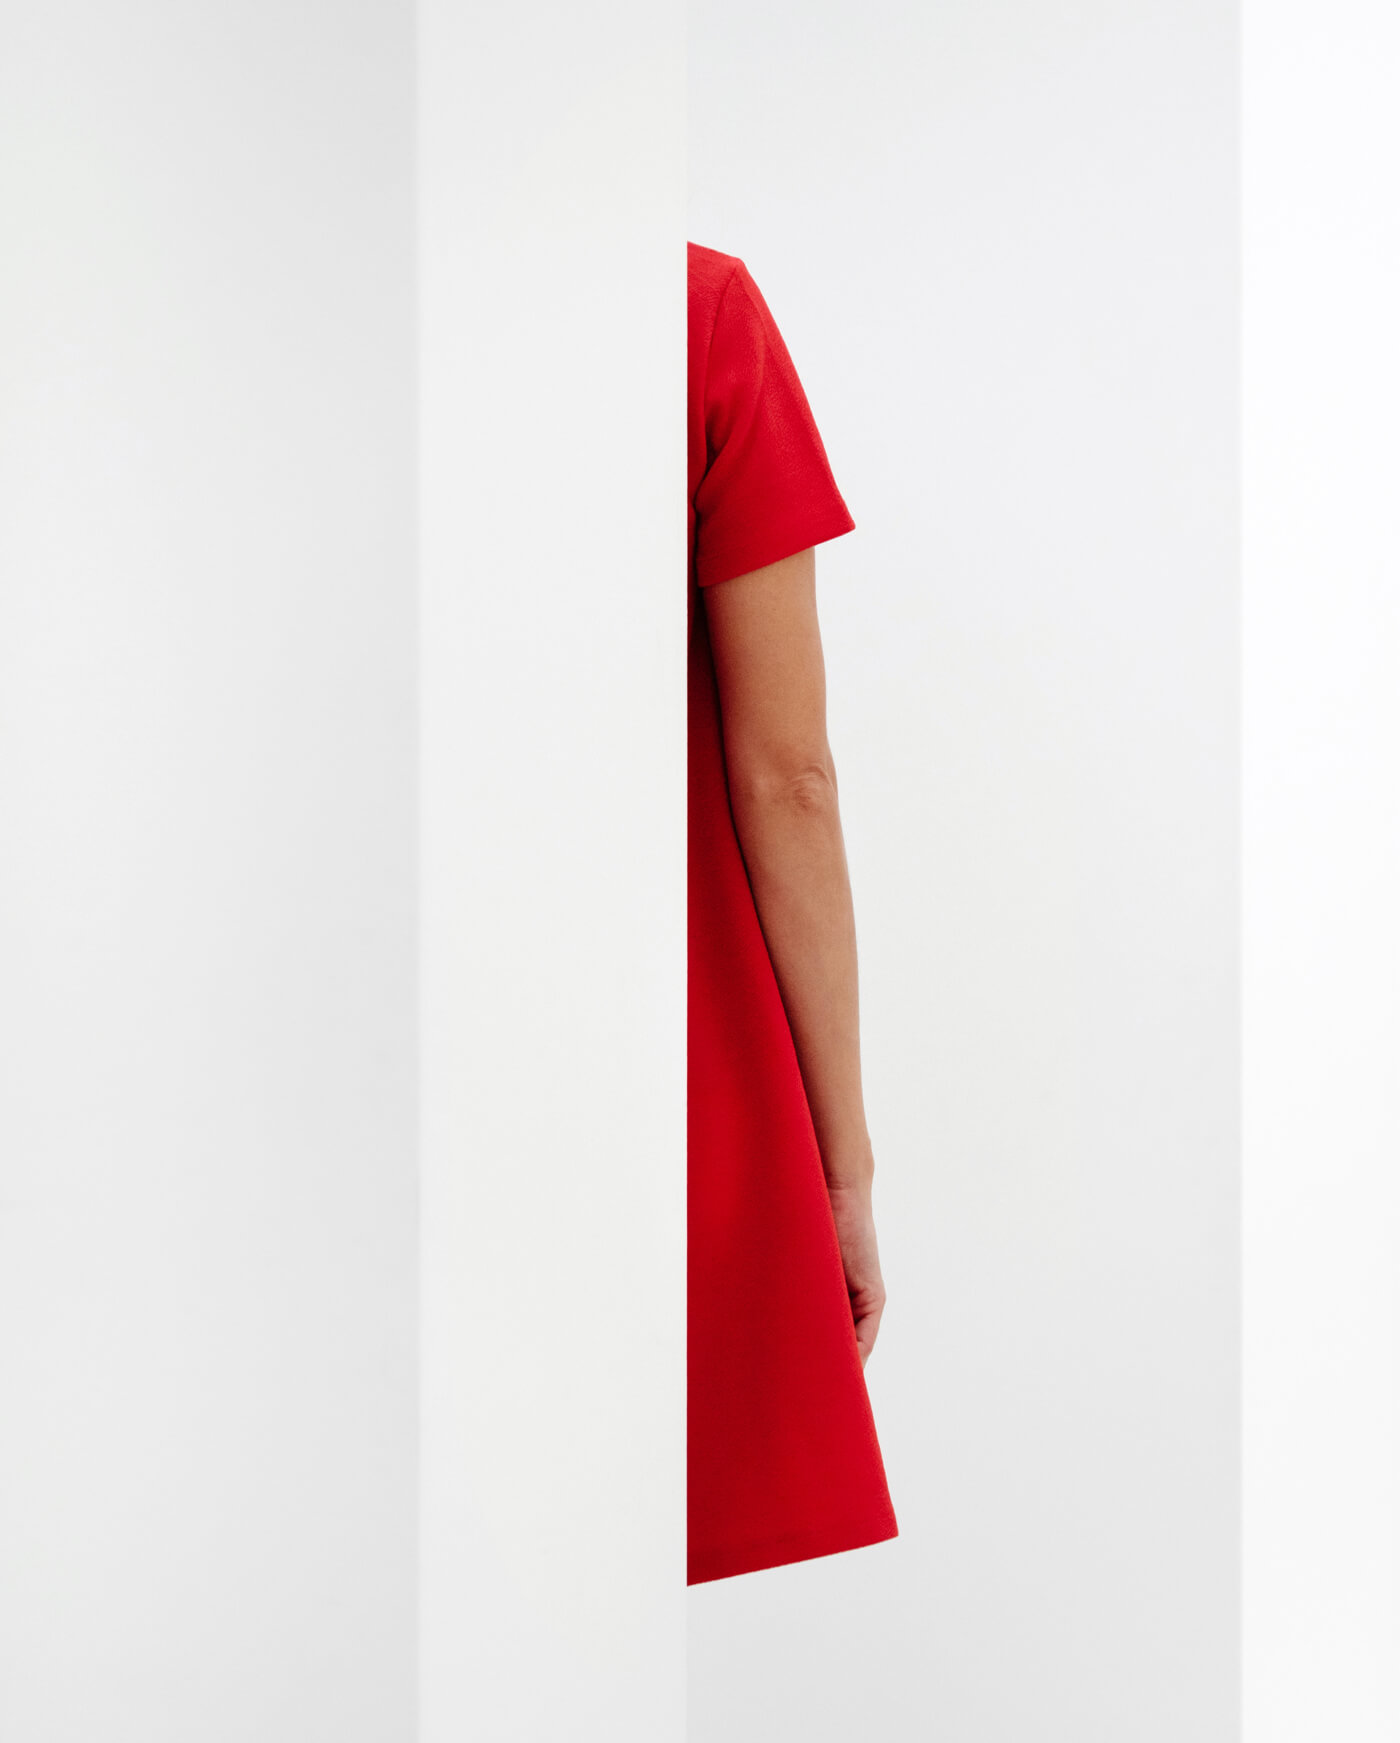 a half-seen woman in red dress on a white background